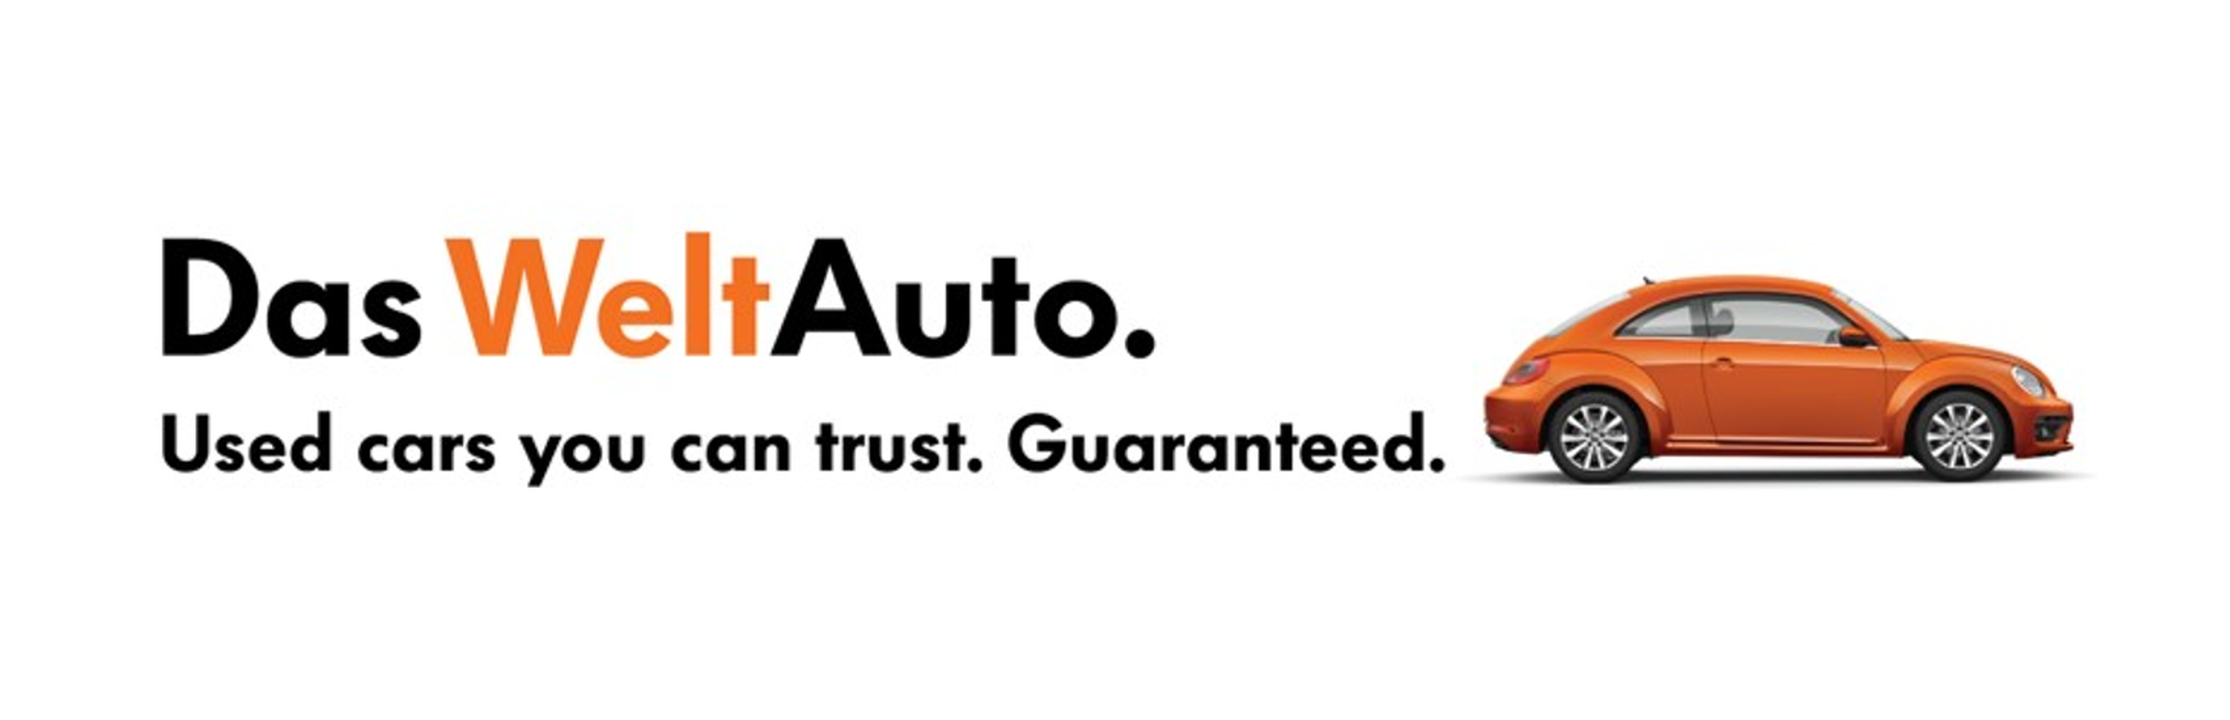 Image of About Das WeltAuto